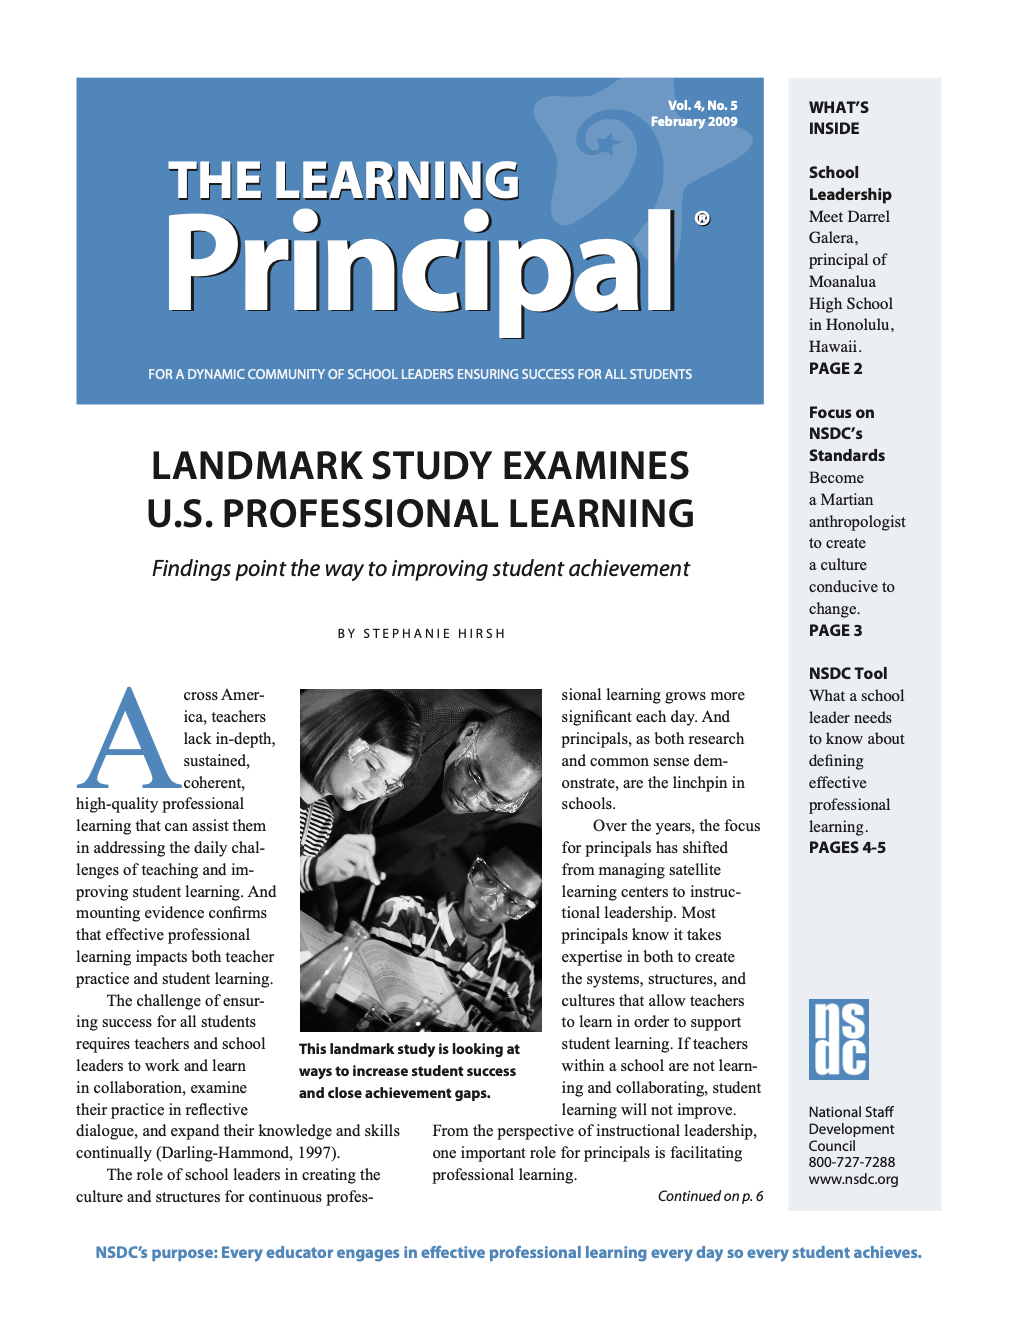 the-learning-principal-feb-2009-vol-4-no5